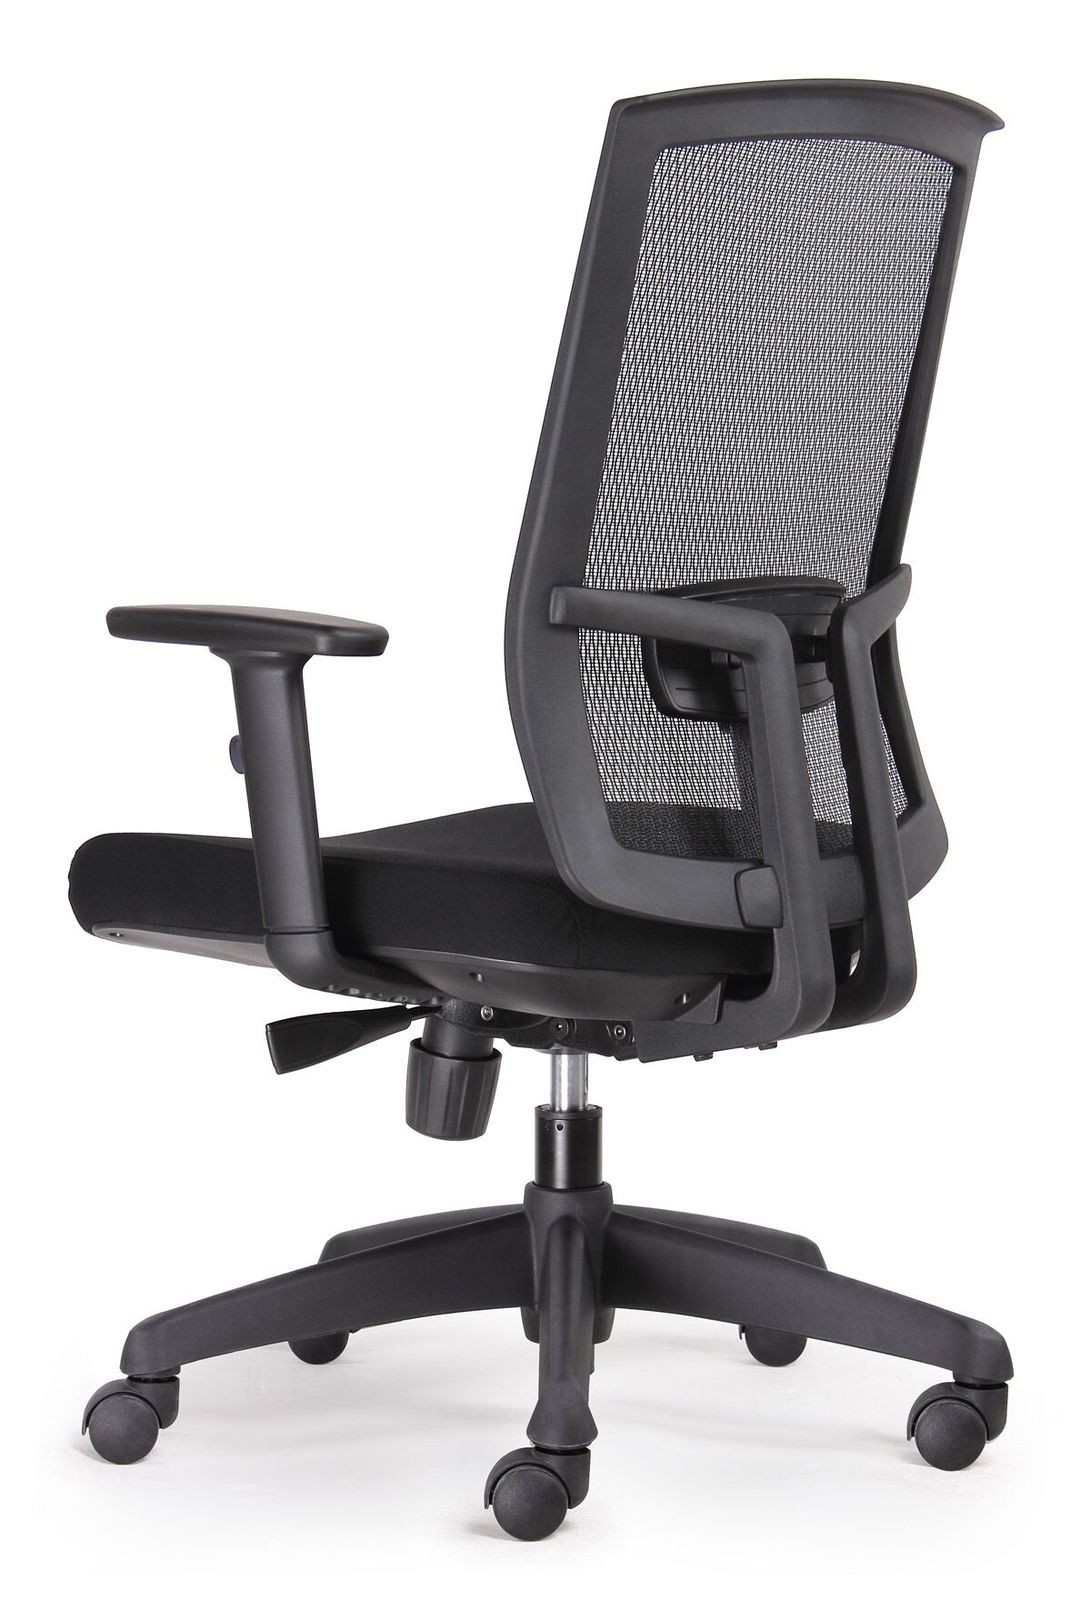 ergonomic chair brisbane metal frame west elm kal black promesh mesh high back task office stock